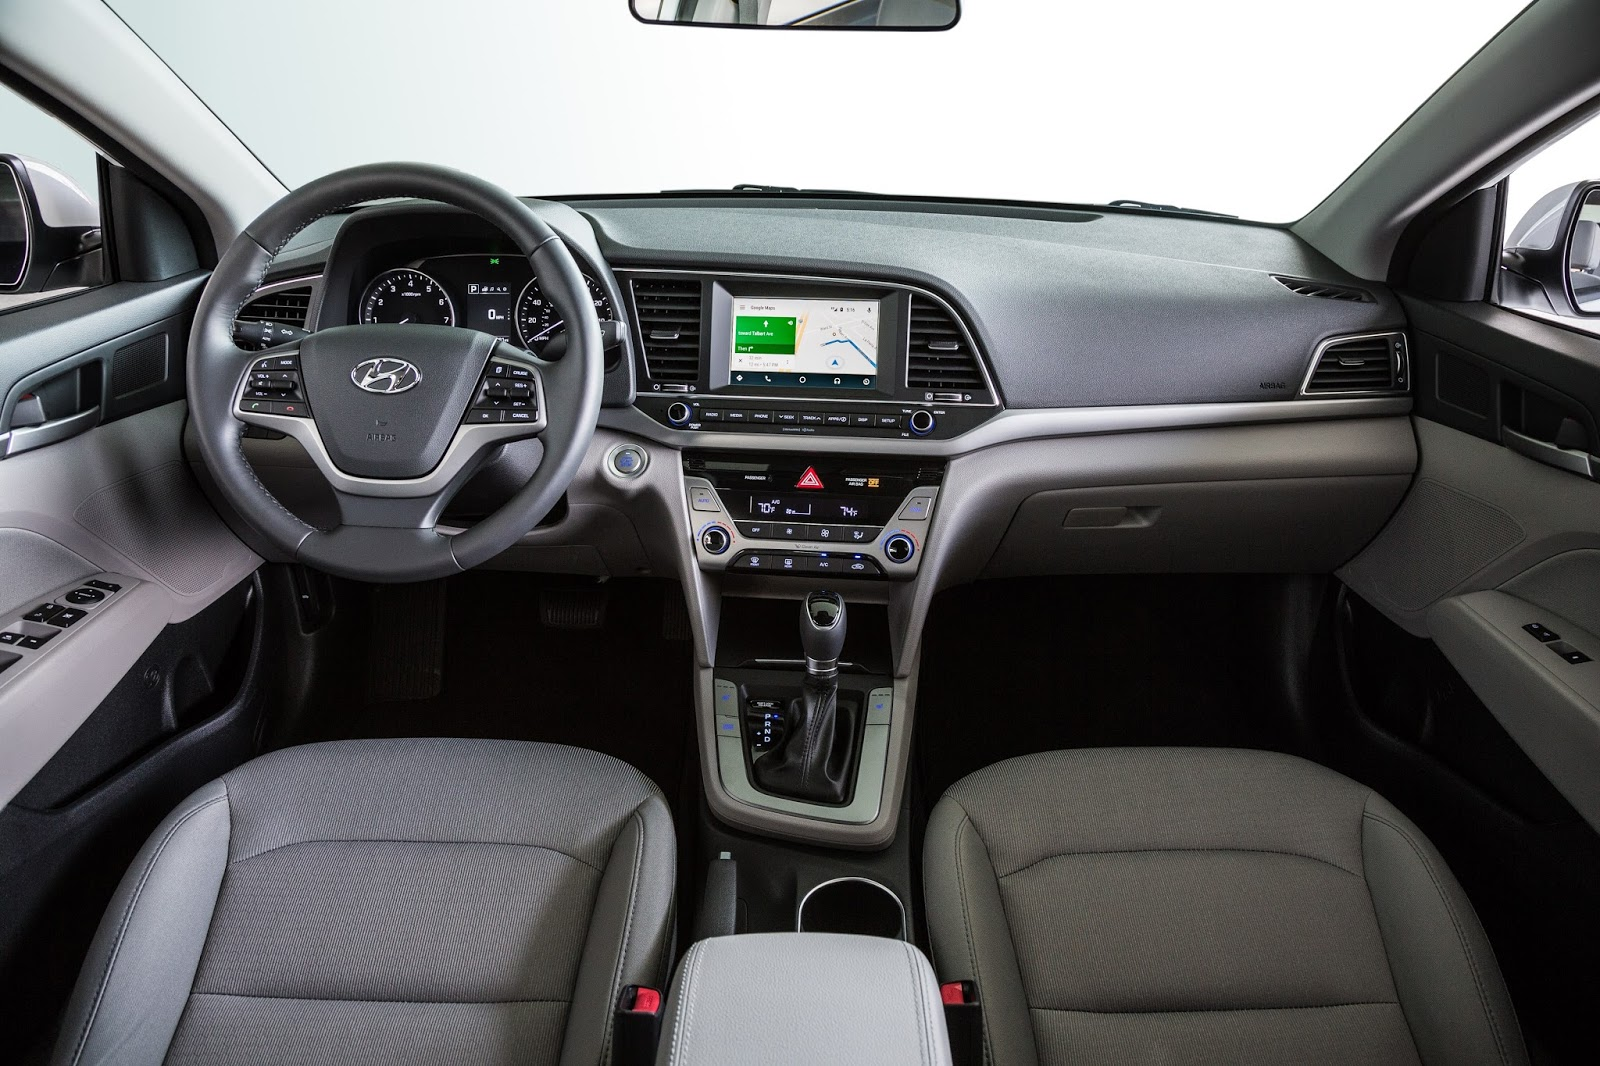 Interior View Of 2017 Hyundai Elantra Eco